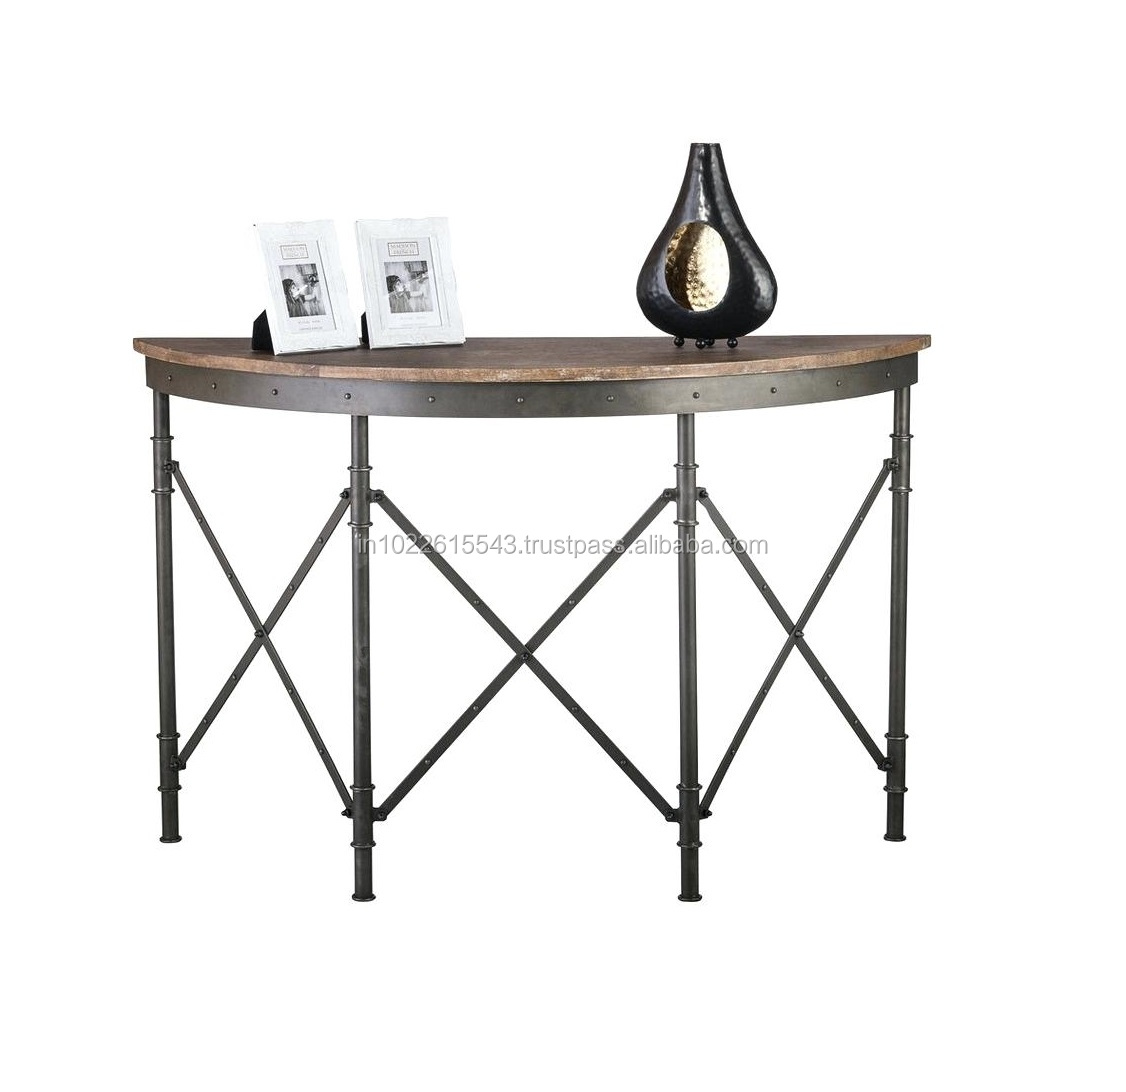 Industrial Rustic Wood Iron Console Vintage Iron Wood Console Table Buy Antique Wood Console Tables Antique Iron Console Table Reclaimed Wood